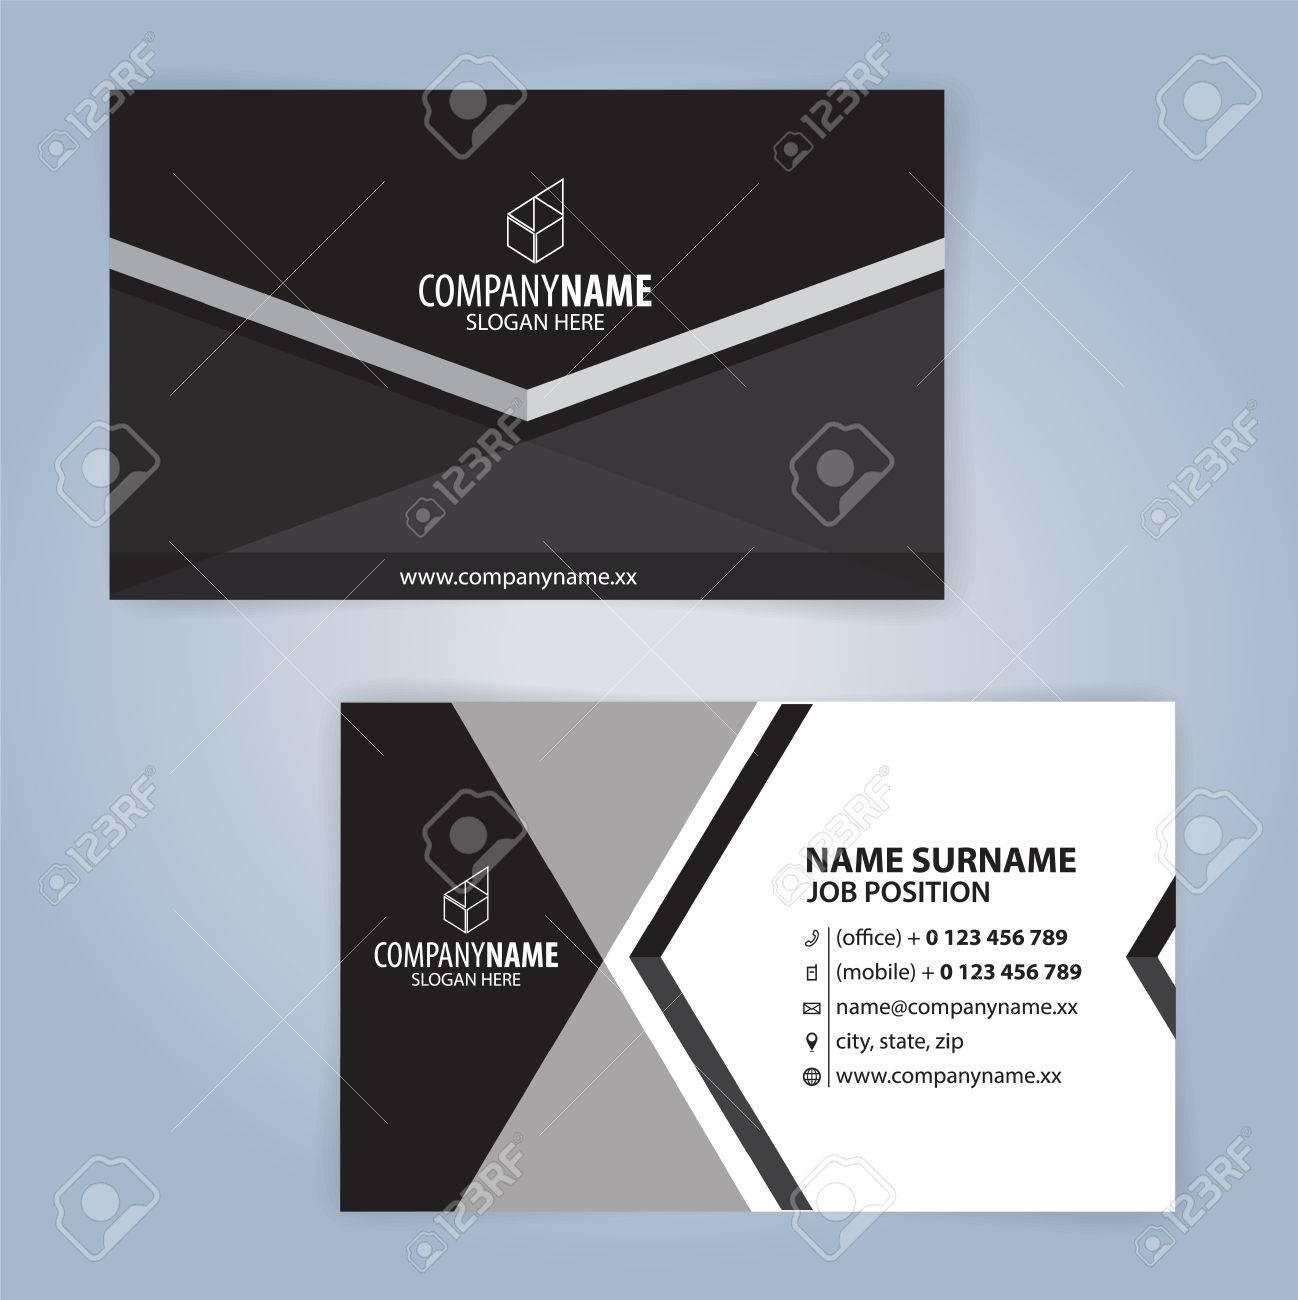 Black and white modern business card template illustration vector banco de imagens black and white modern business card template illustration vector 10 reheart Gallery